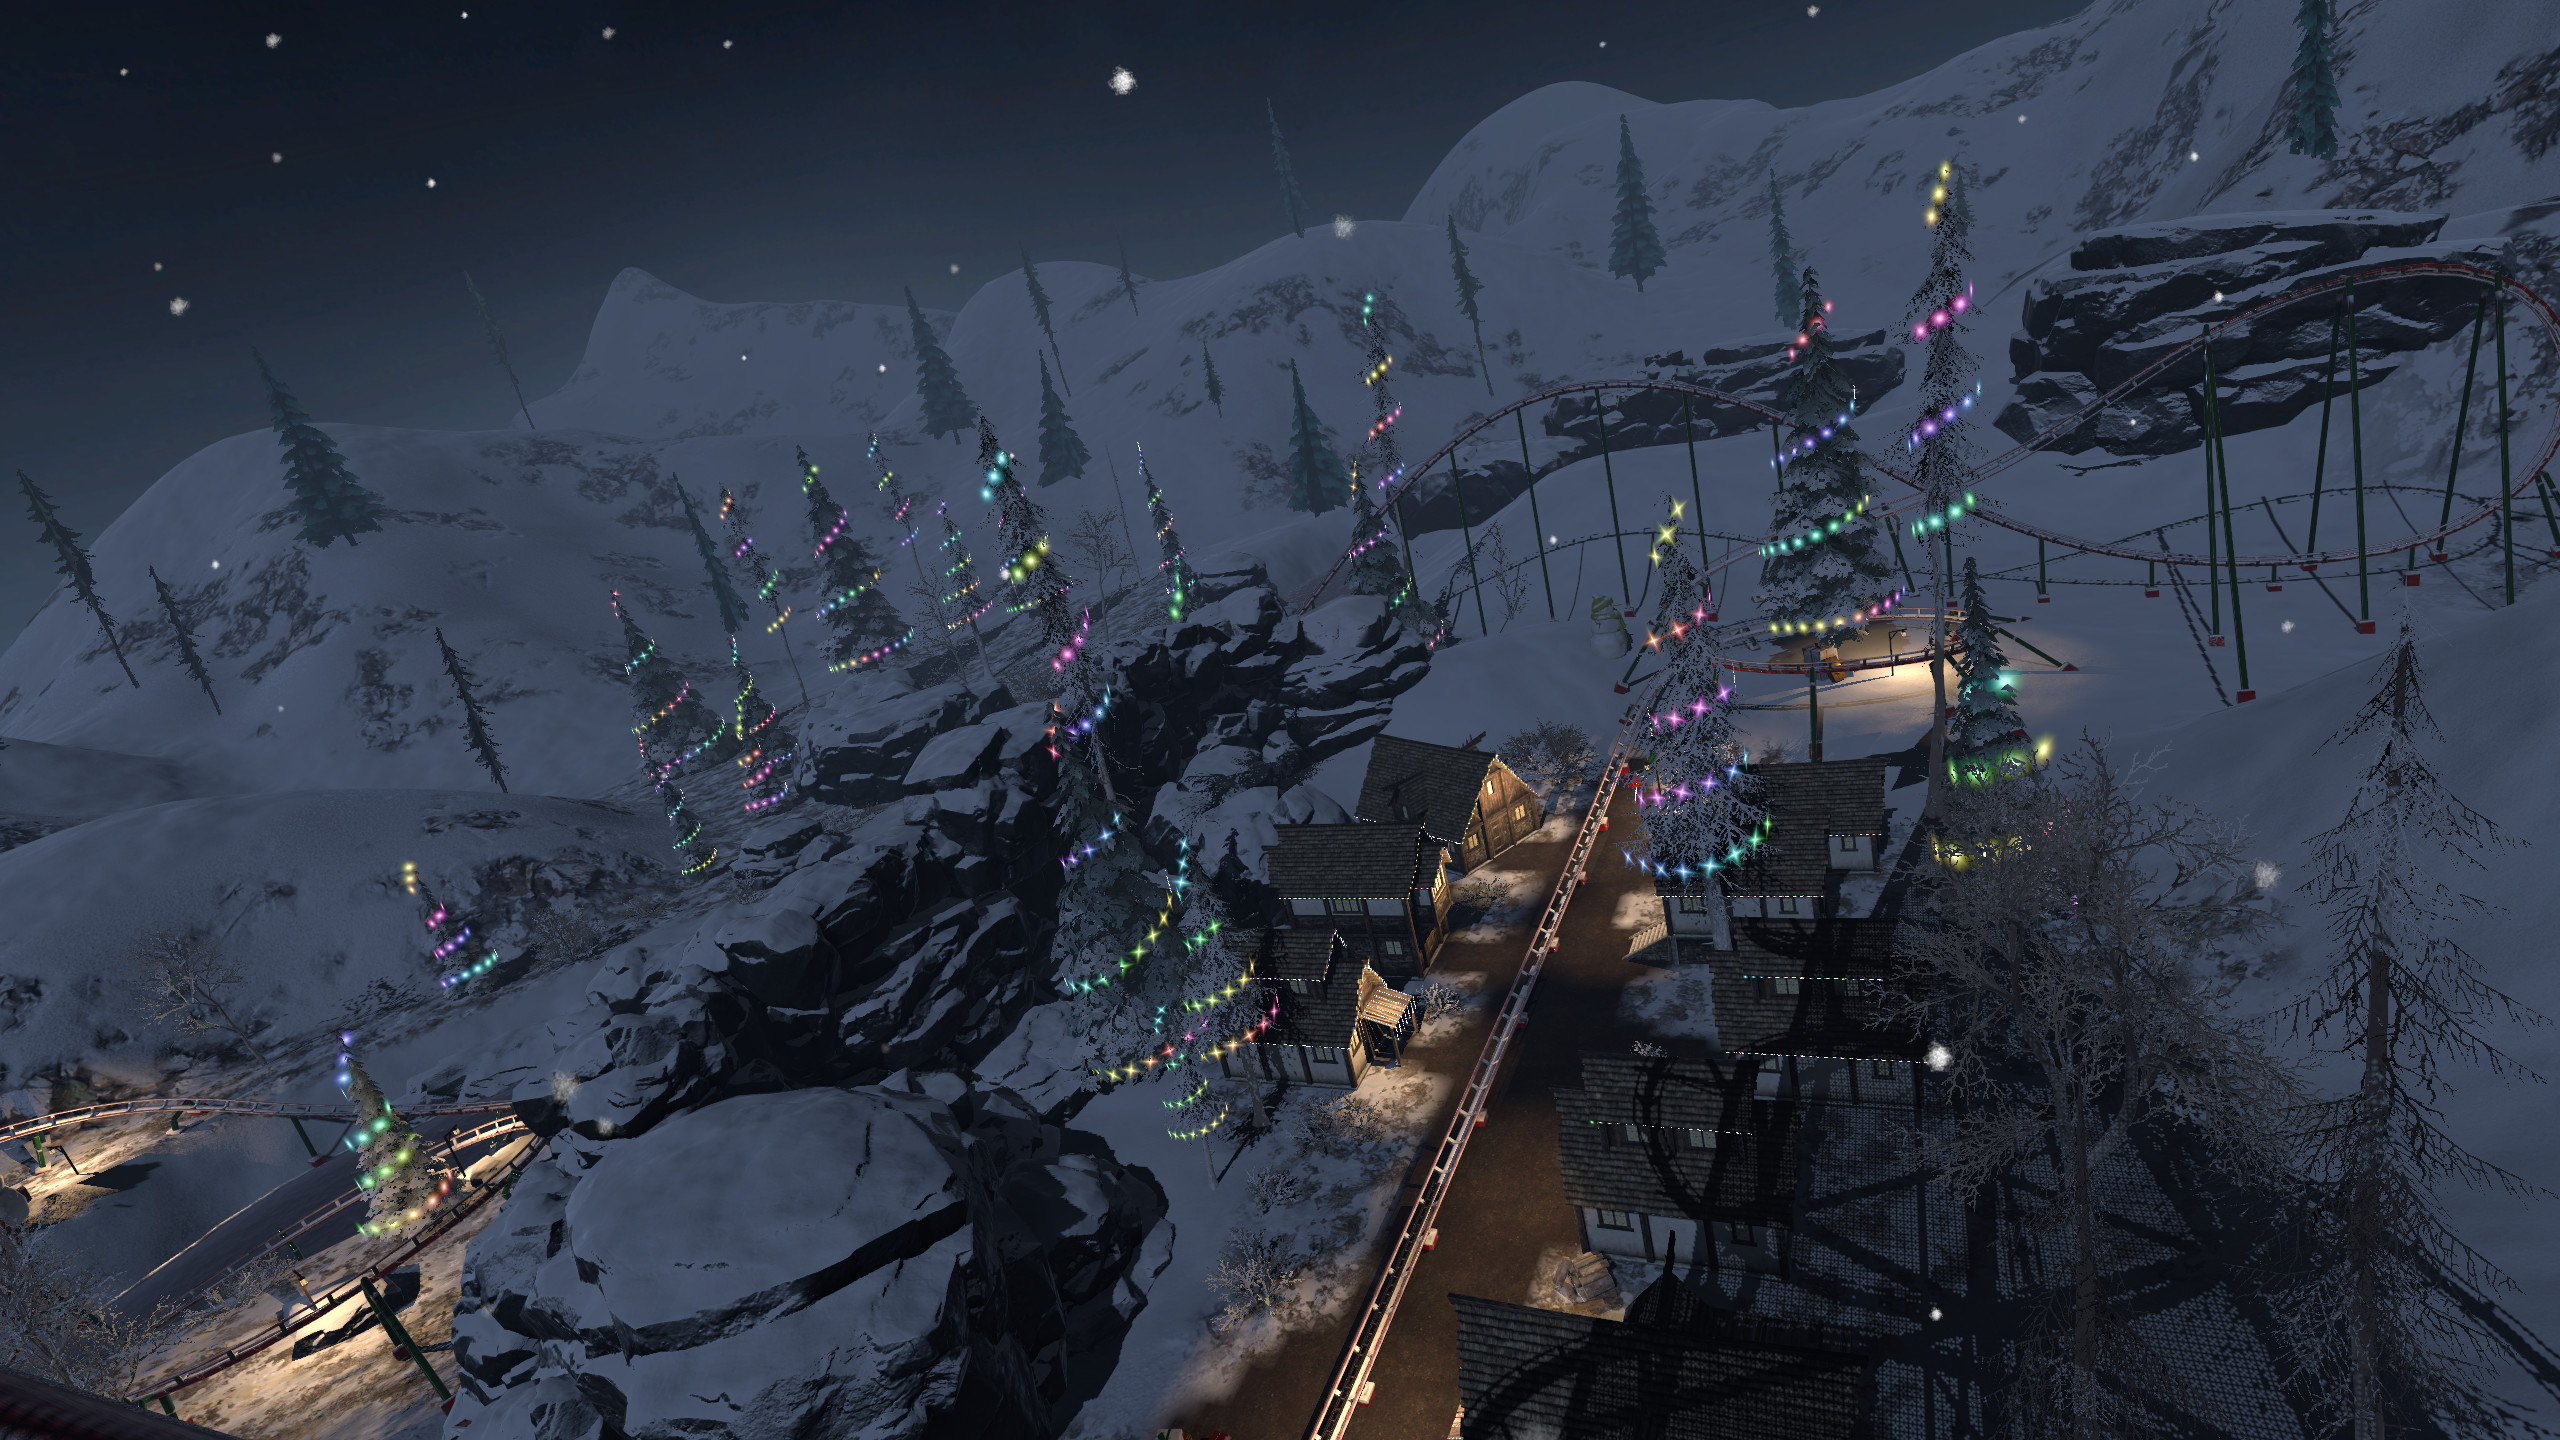 Epic Roller Coasters — North Pole screenshot